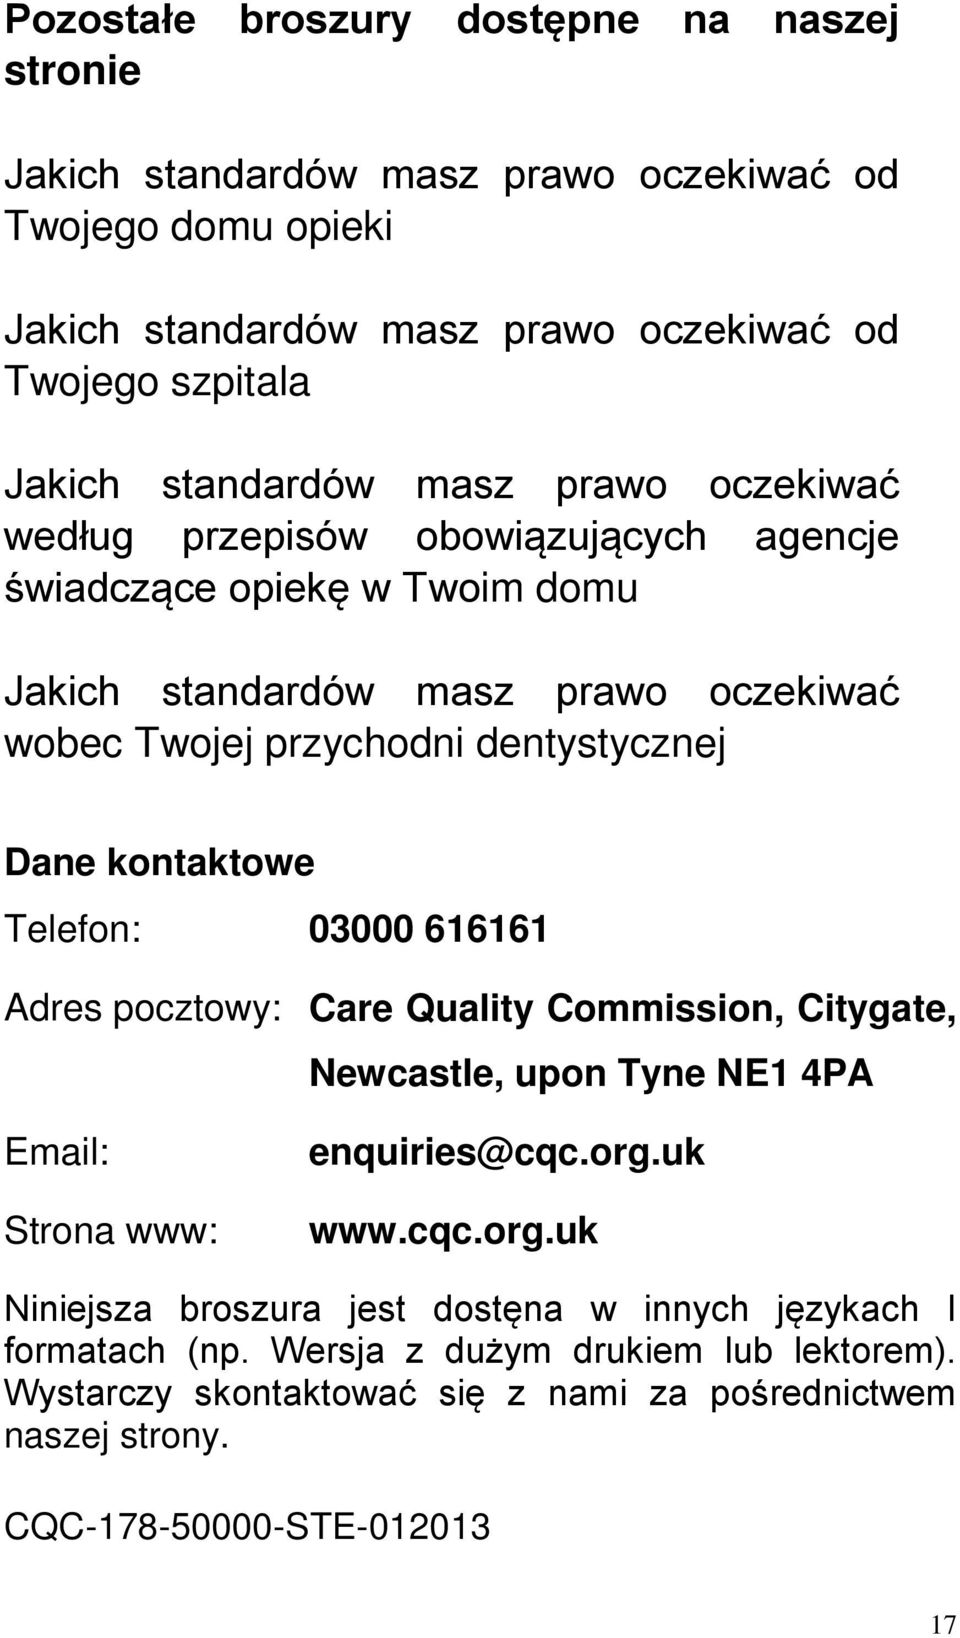 Dane kontaktowe Telefon: 03000 616161 Adres pocztowy: Care Quality Commission, Citygate, Newcastle, upon Tyne NE1 4PA Email: Strona www: enquiries@cqc.org.